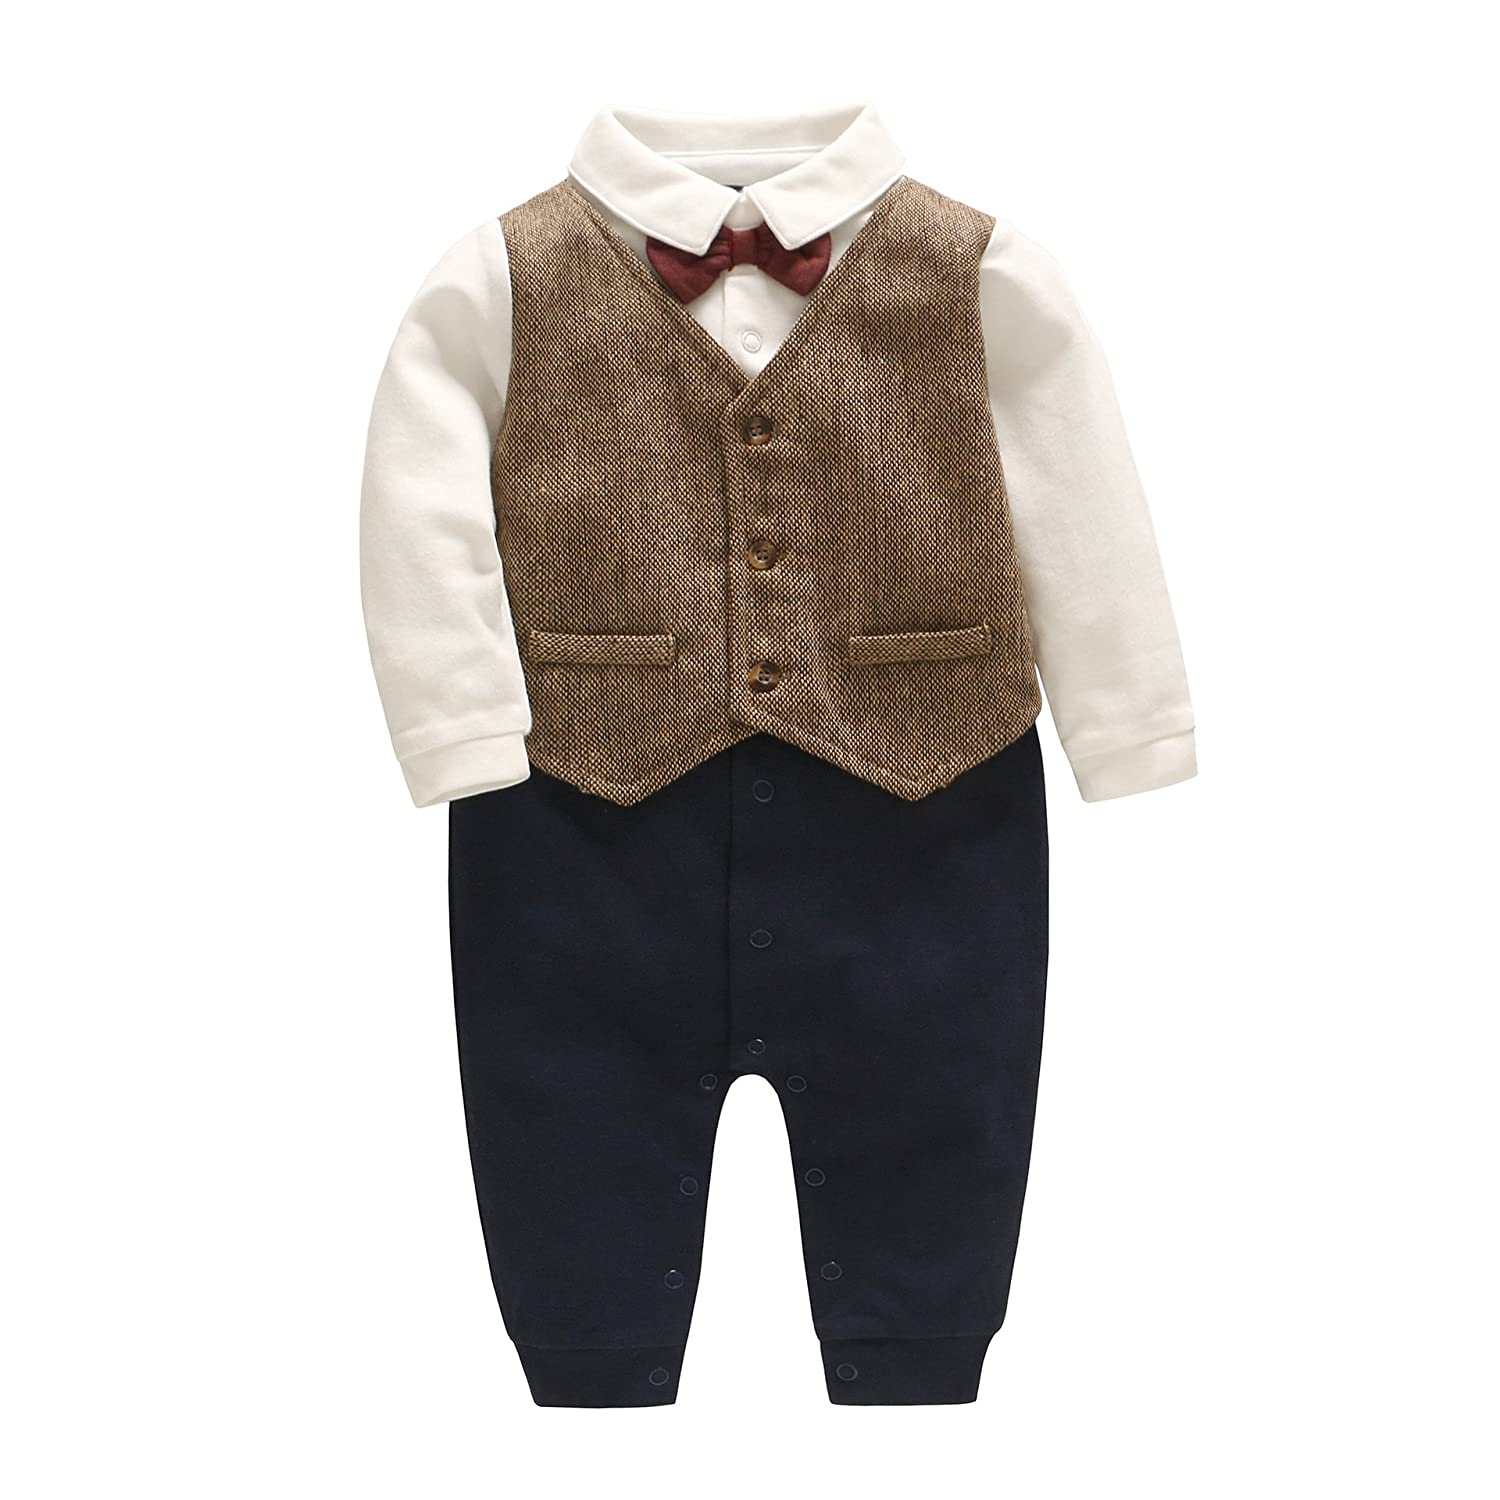 Fairy Baby Newborn Baby Boy Onesie Rompers Suits Gentleman Formal Outfits with Bowtie